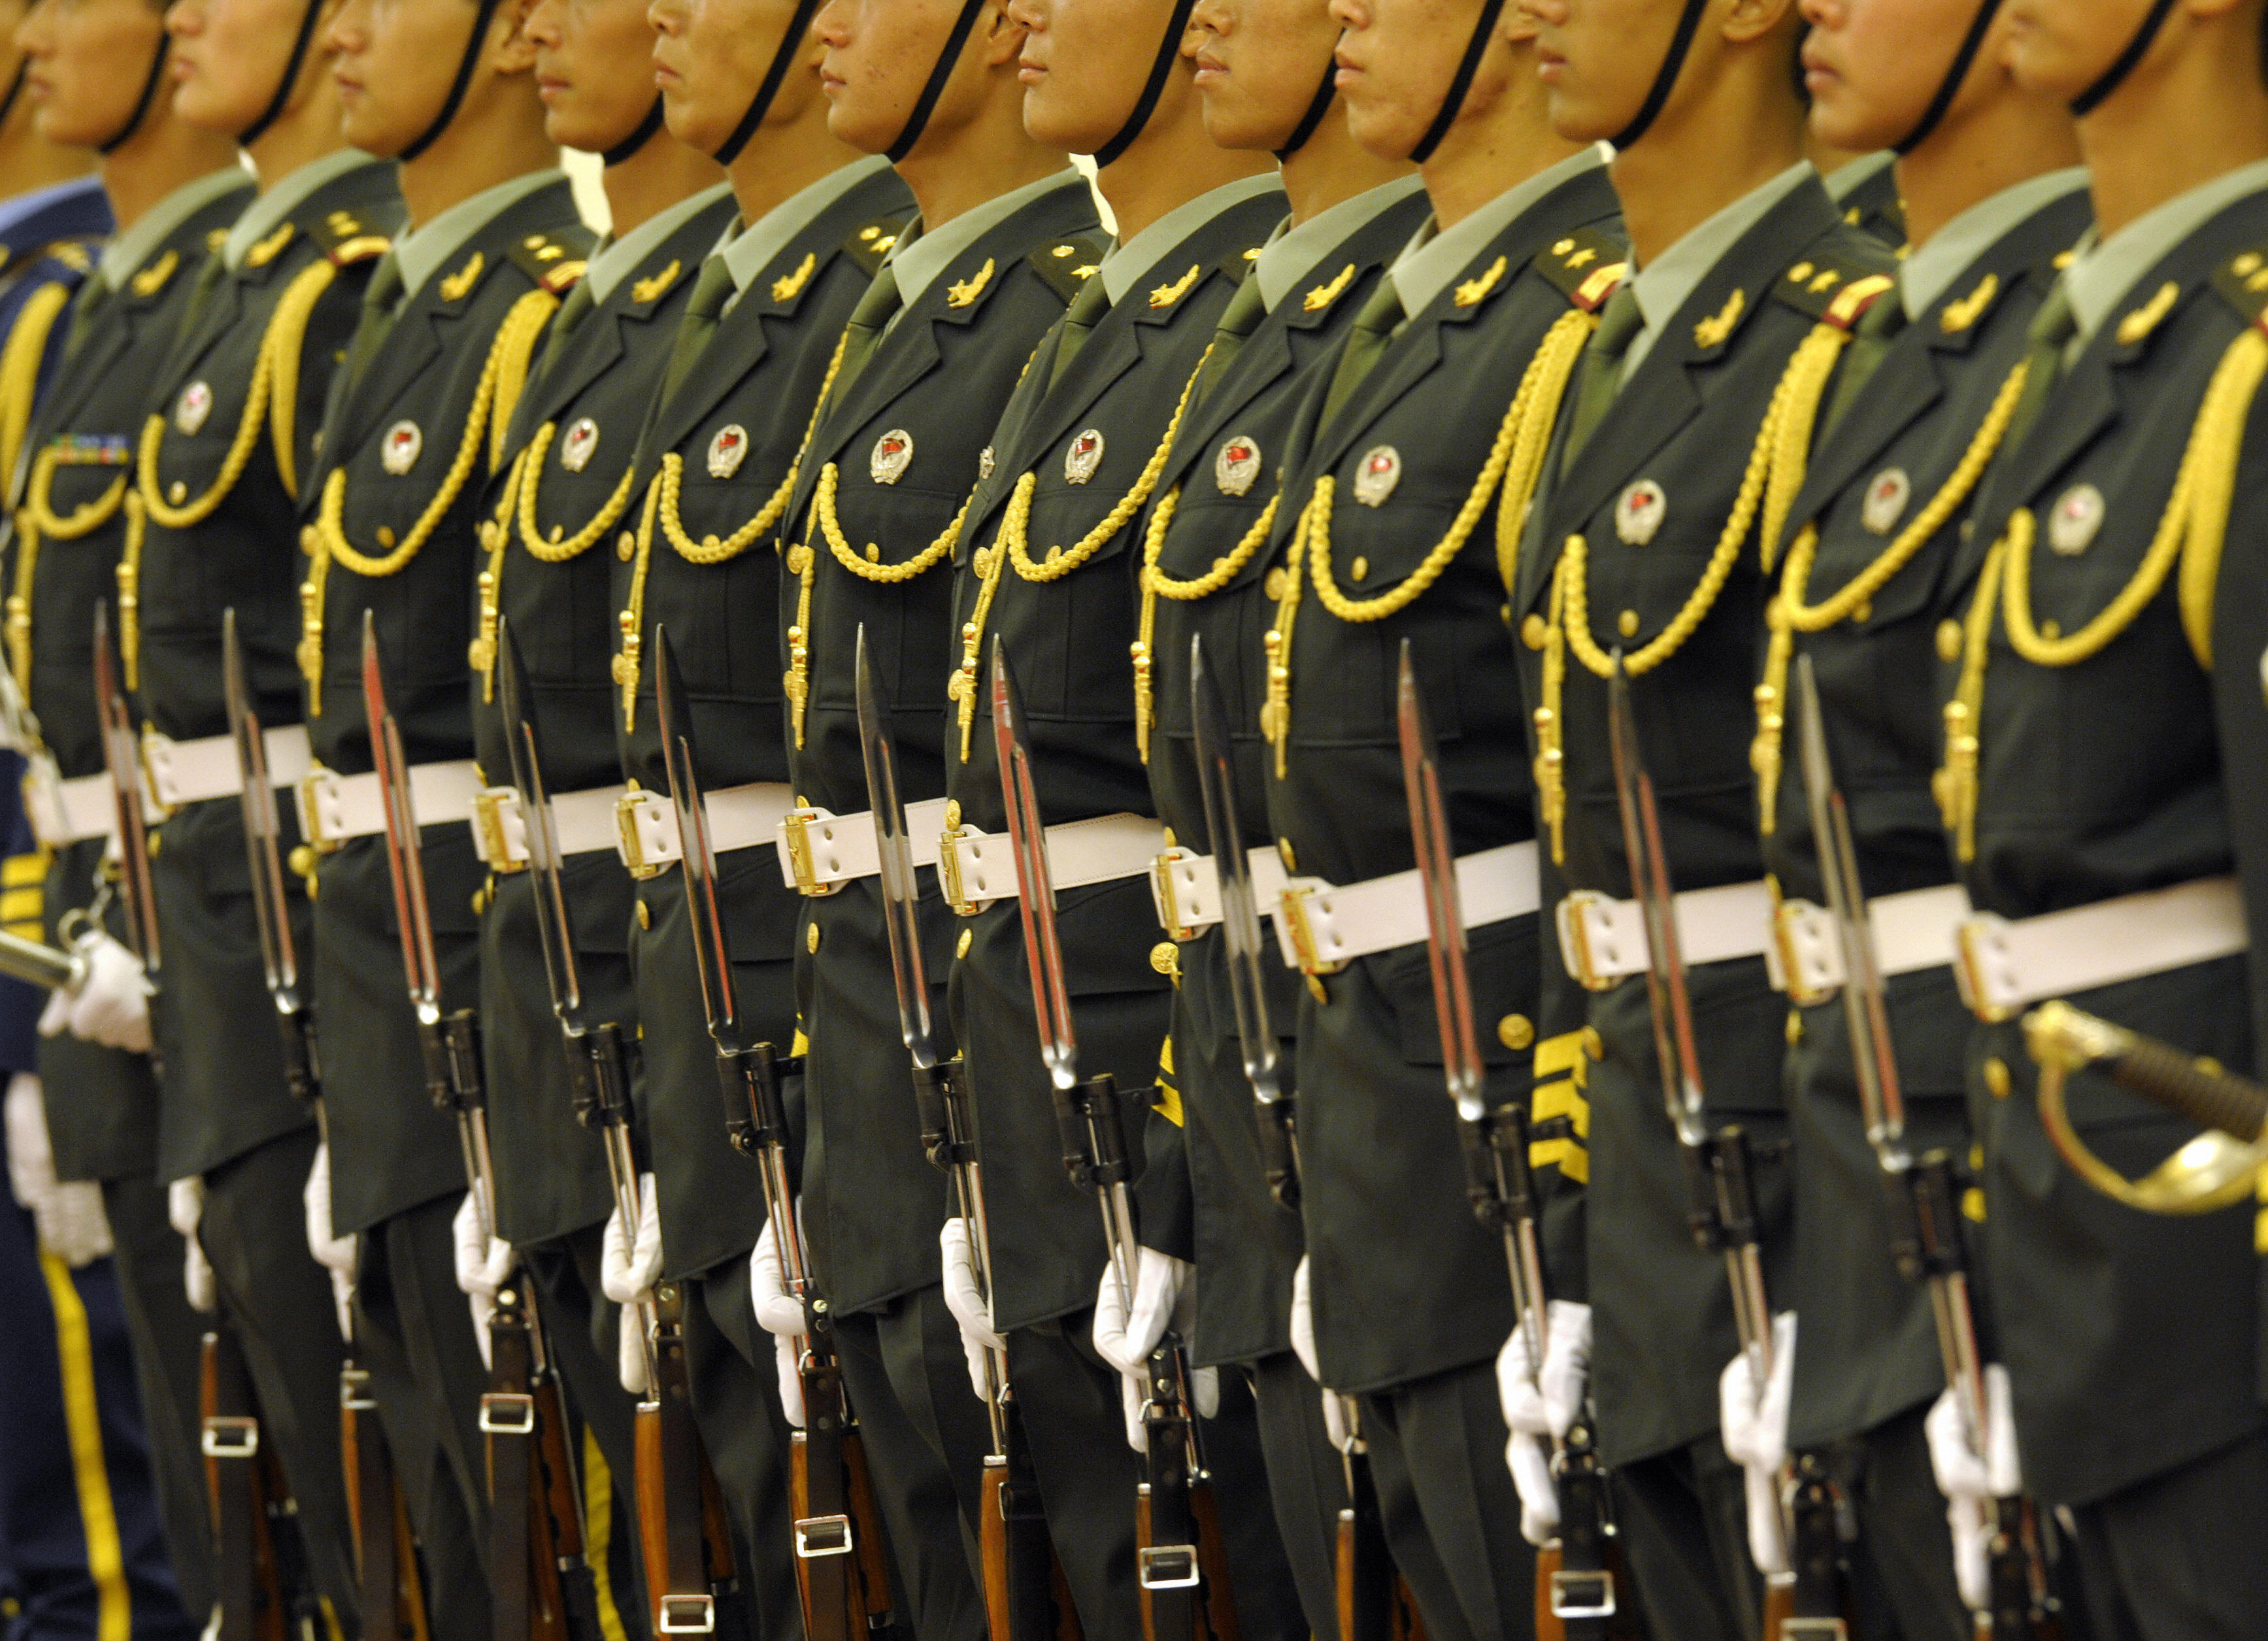 Chinese People's Liberation Army's honor guards line up during a welcome ceremony for Turkish President Abdullah Gul at the Great Hall of the People in Beijing on June 25, 2009.